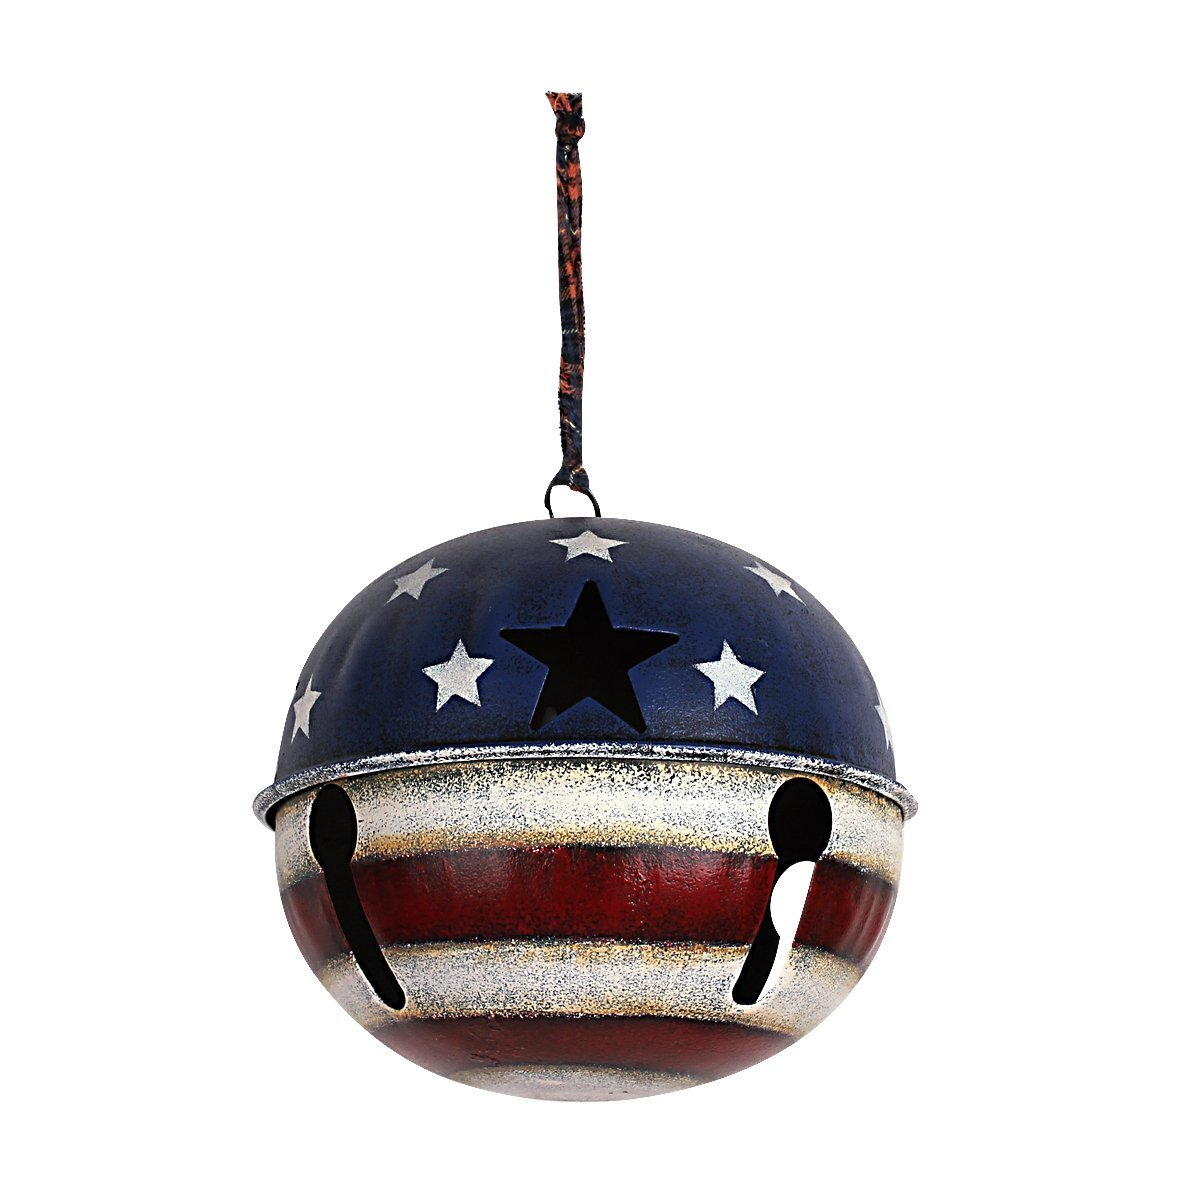 1b078fb7d6c Attraction Design American Glory Bell Antique Metal American Glory Bell  Great for July 4th Home Decor